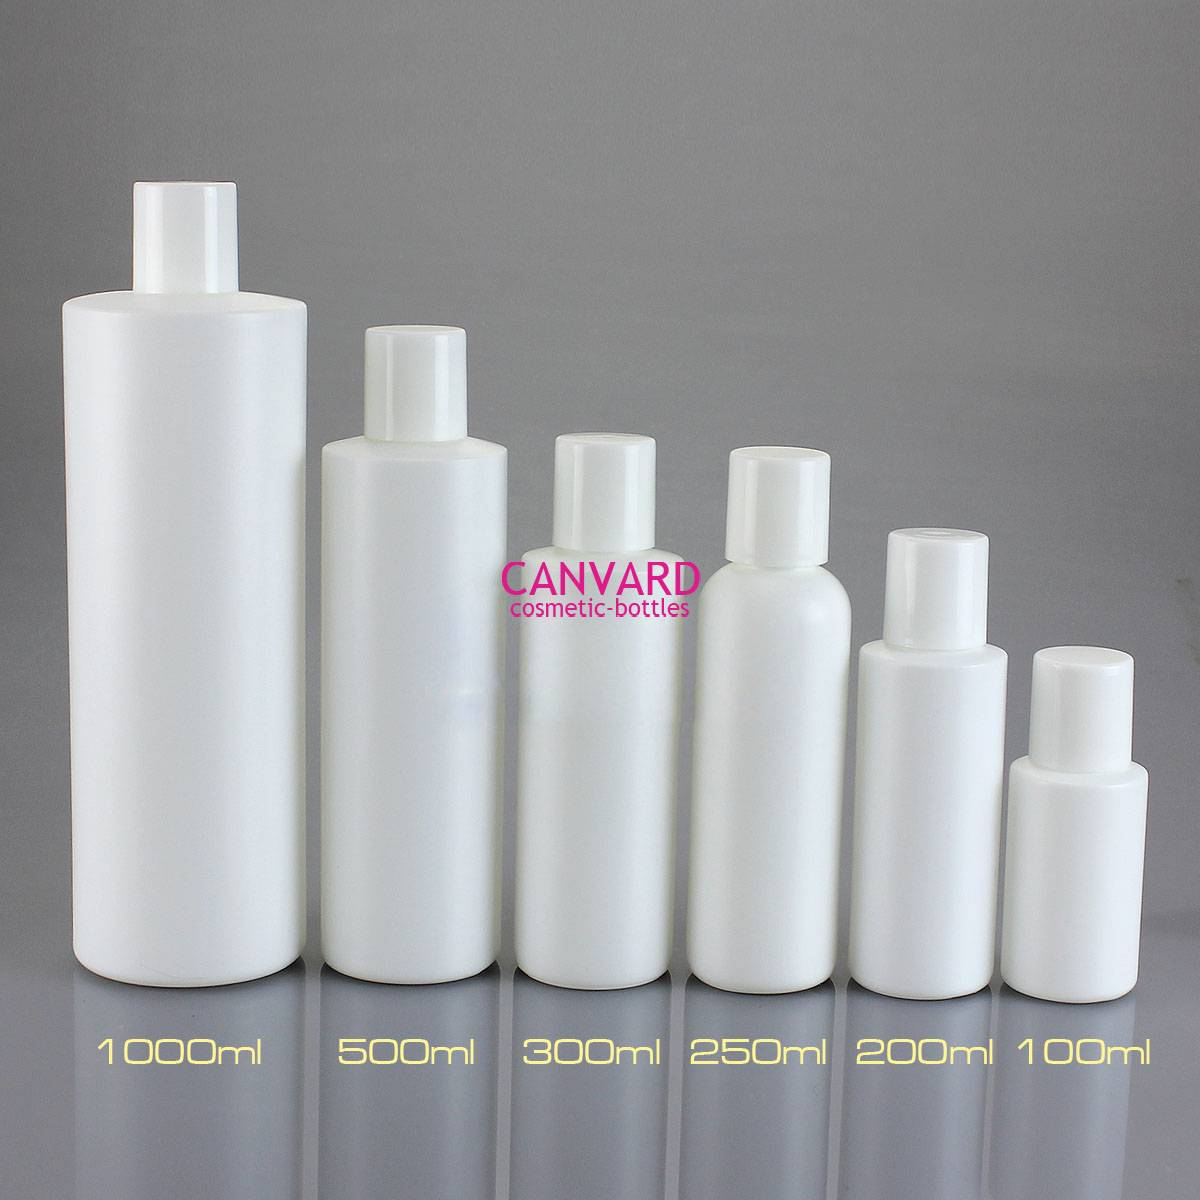 White plastic lotion bottle, white cosmetic bottle with cap, white empty plastic bottle